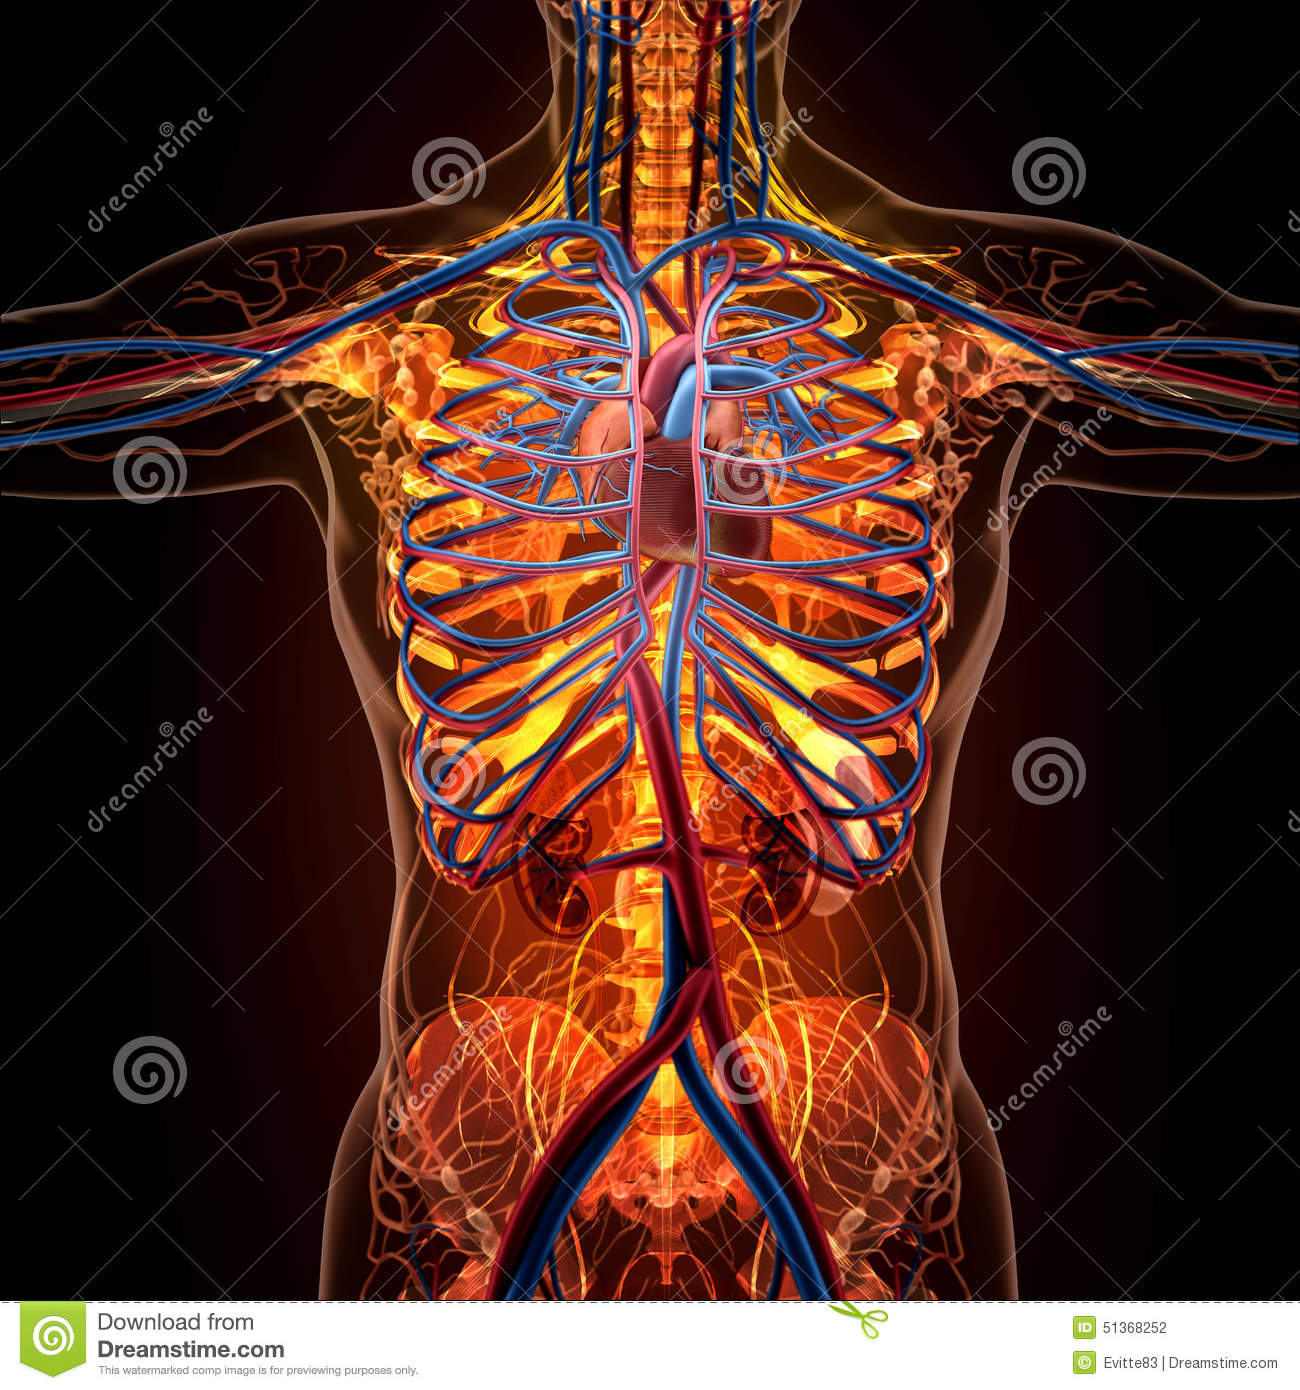 Anatomy Of Human Organs In X-ray View Stock Illustration ...